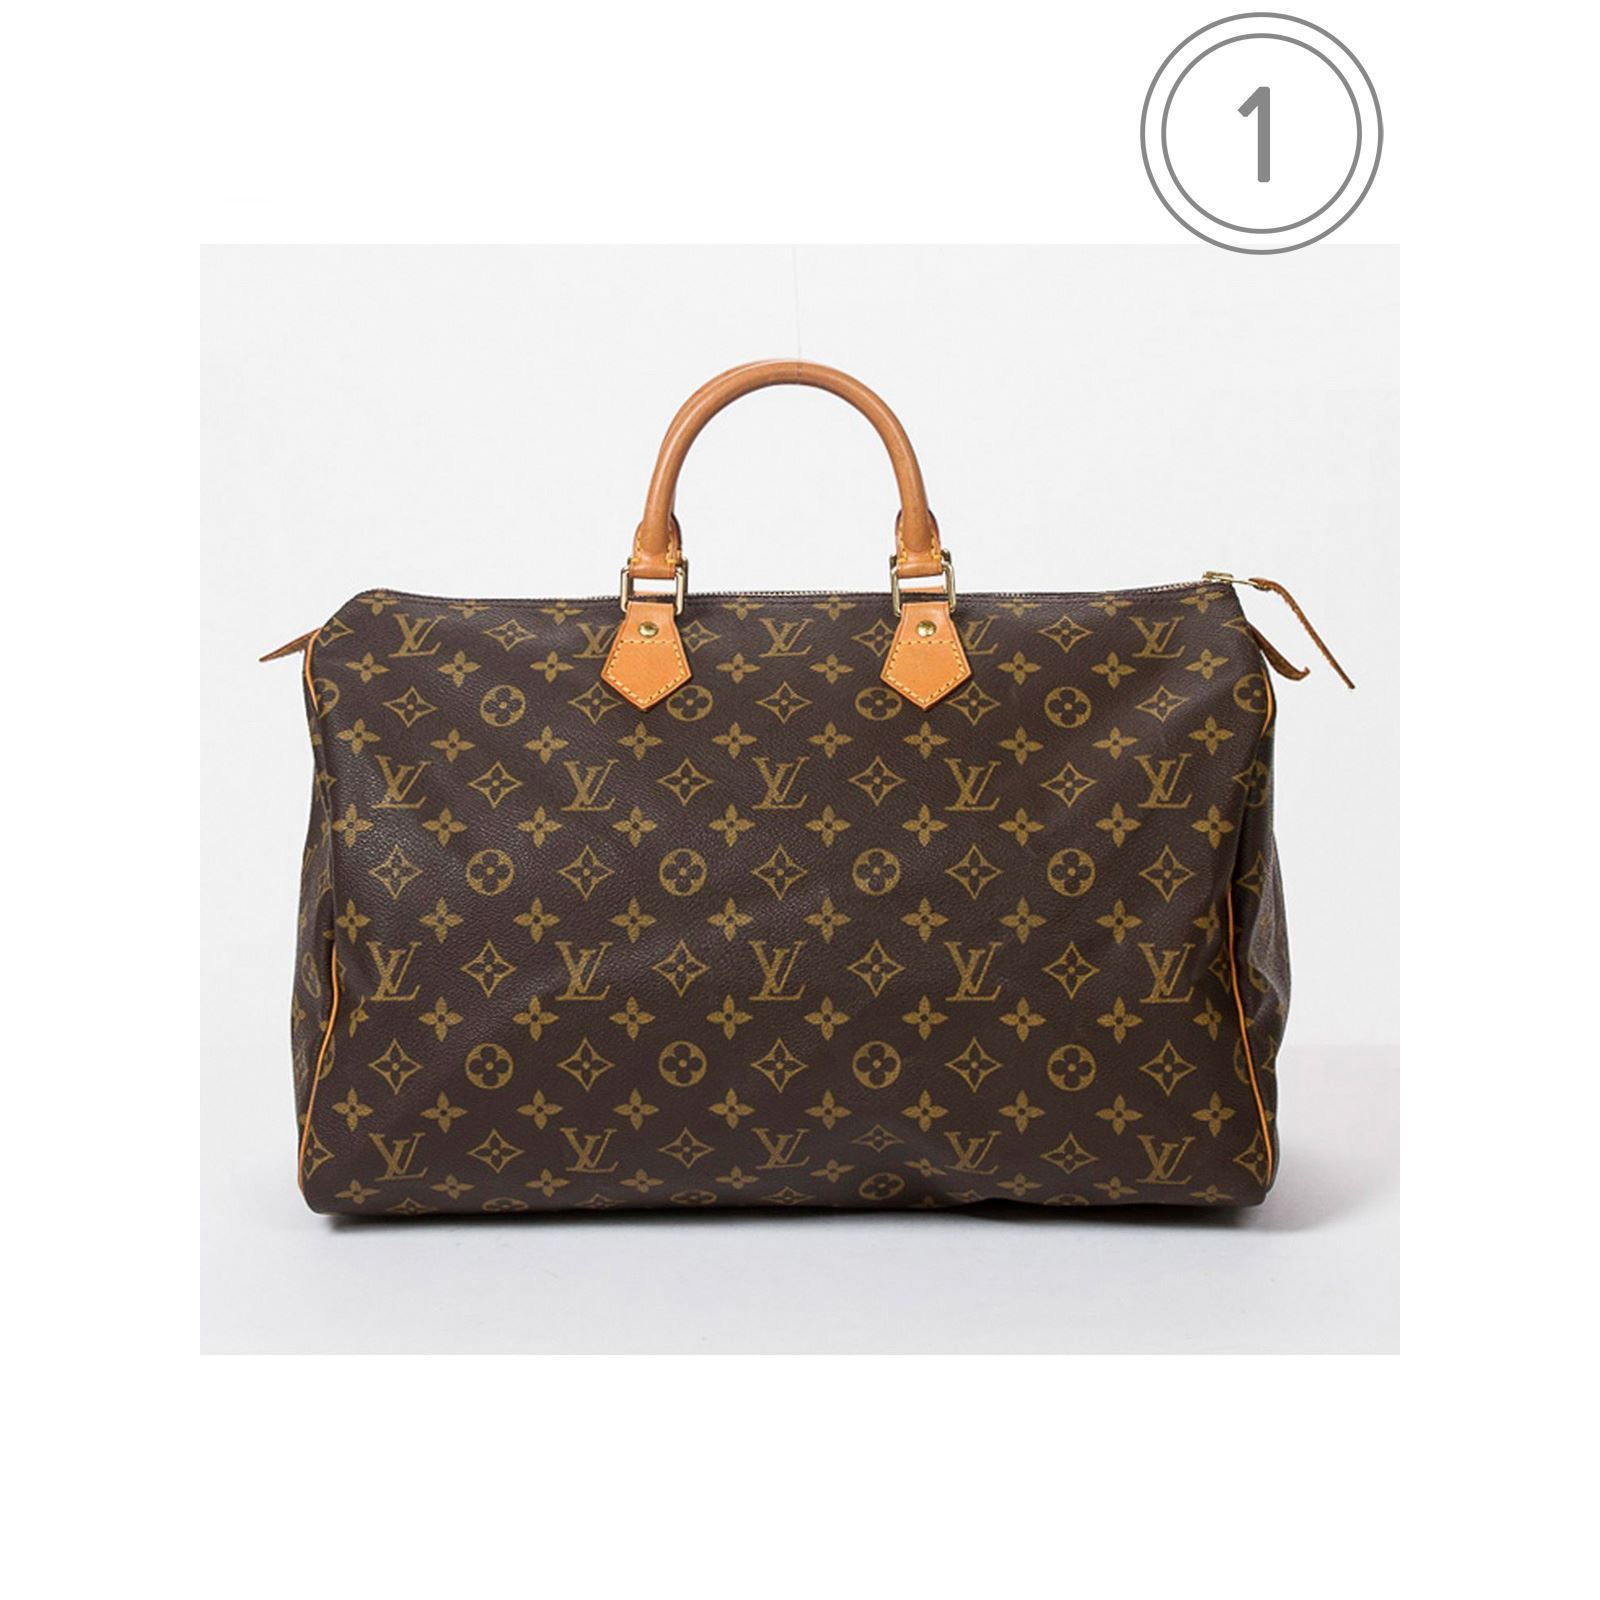 louis vuitton speedy 40 shopping bag braun brandalley. Black Bedroom Furniture Sets. Home Design Ideas